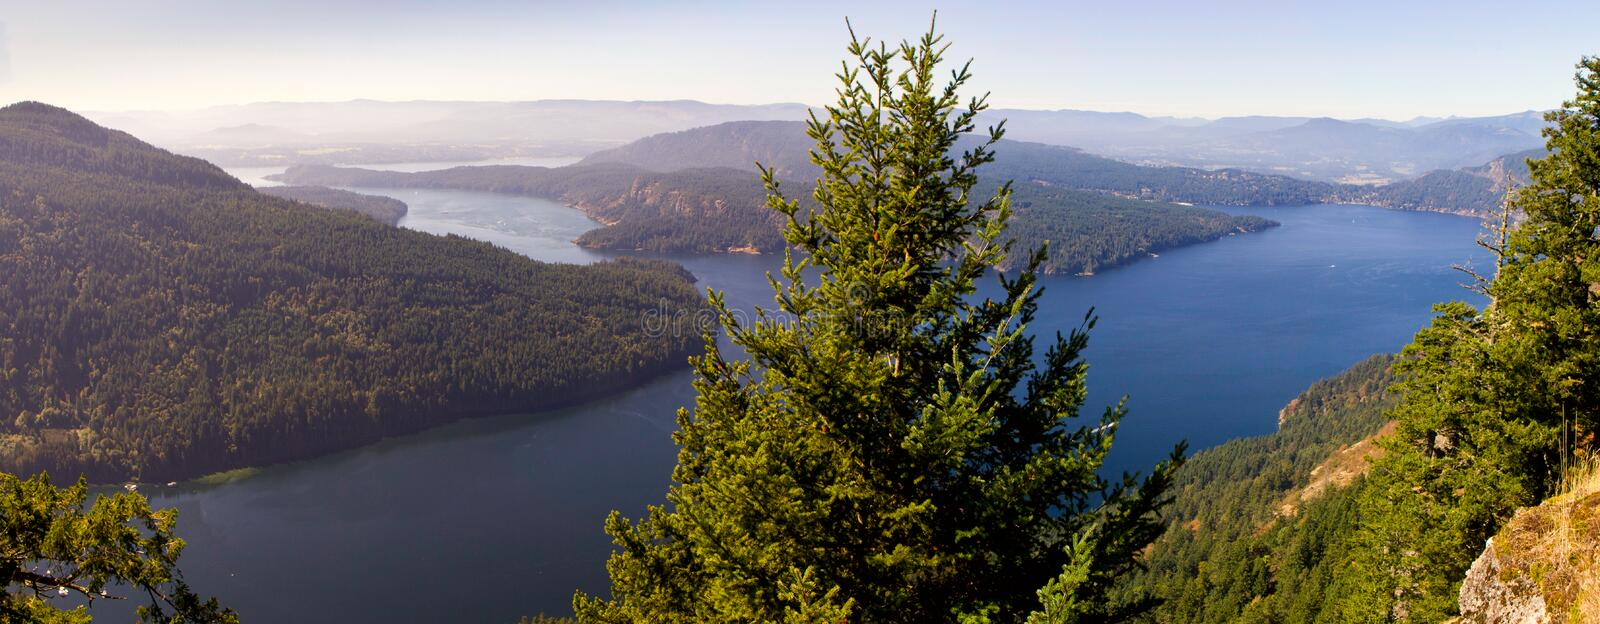 Salt Spring Island. Panoramic View from Mount Maxwell view point (Salt Spring Island, Canada BC) to the north royalty free stock images